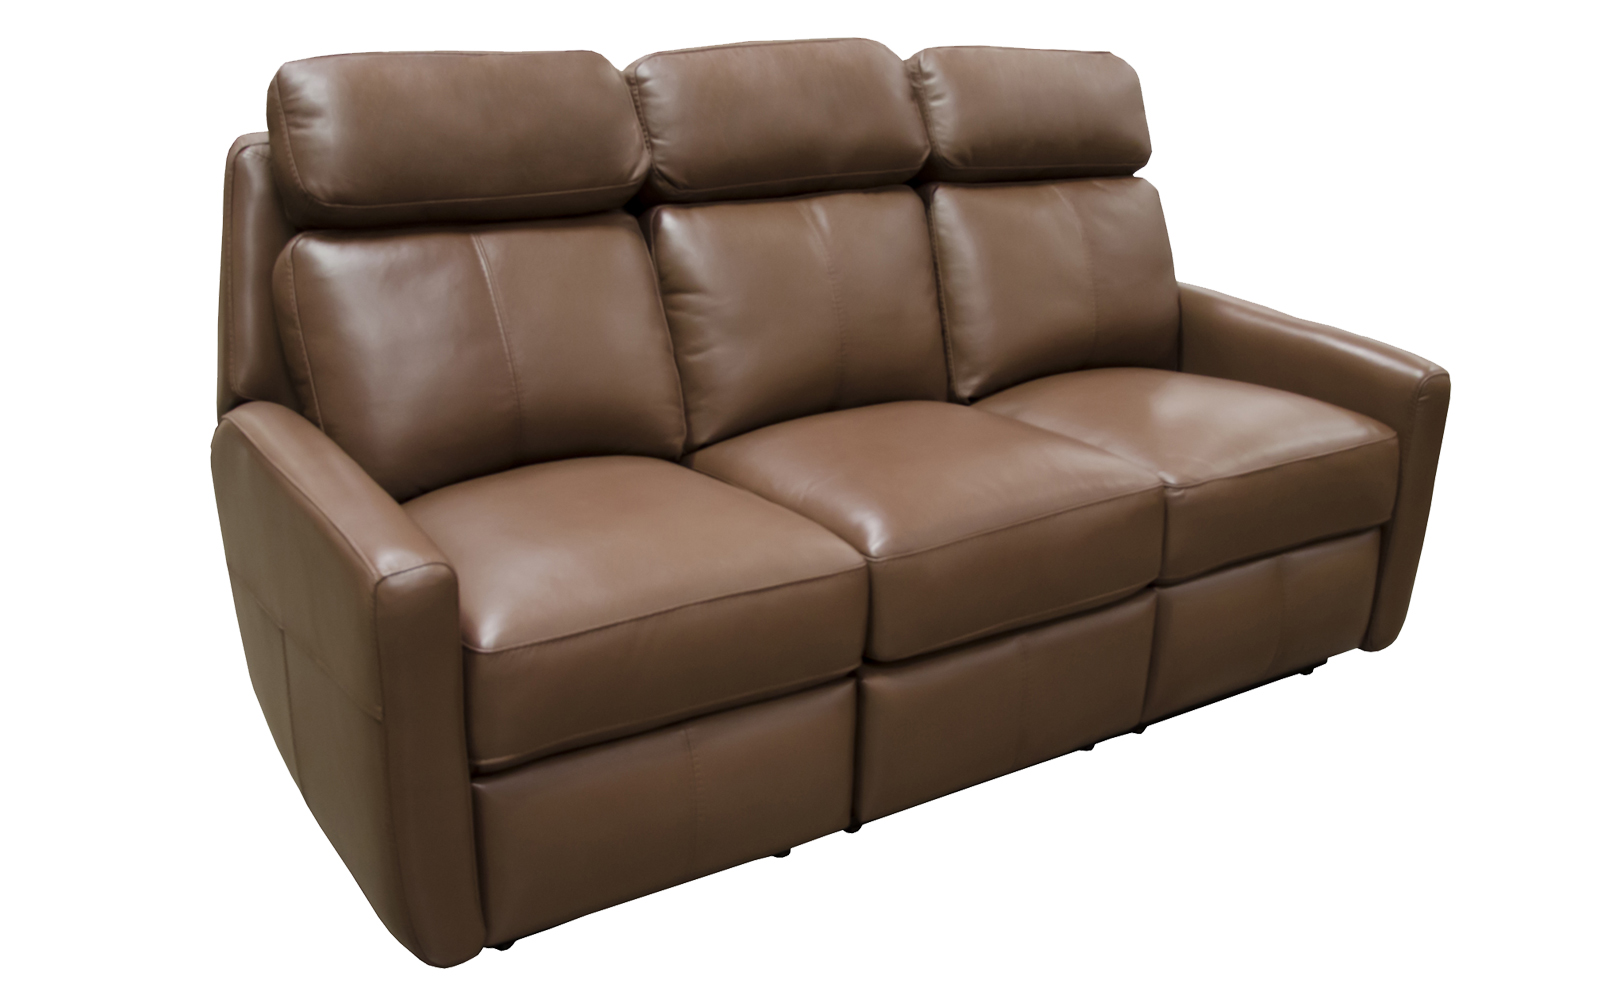 Riverside Drive Reclining Sofa Arizona Leather Interiors